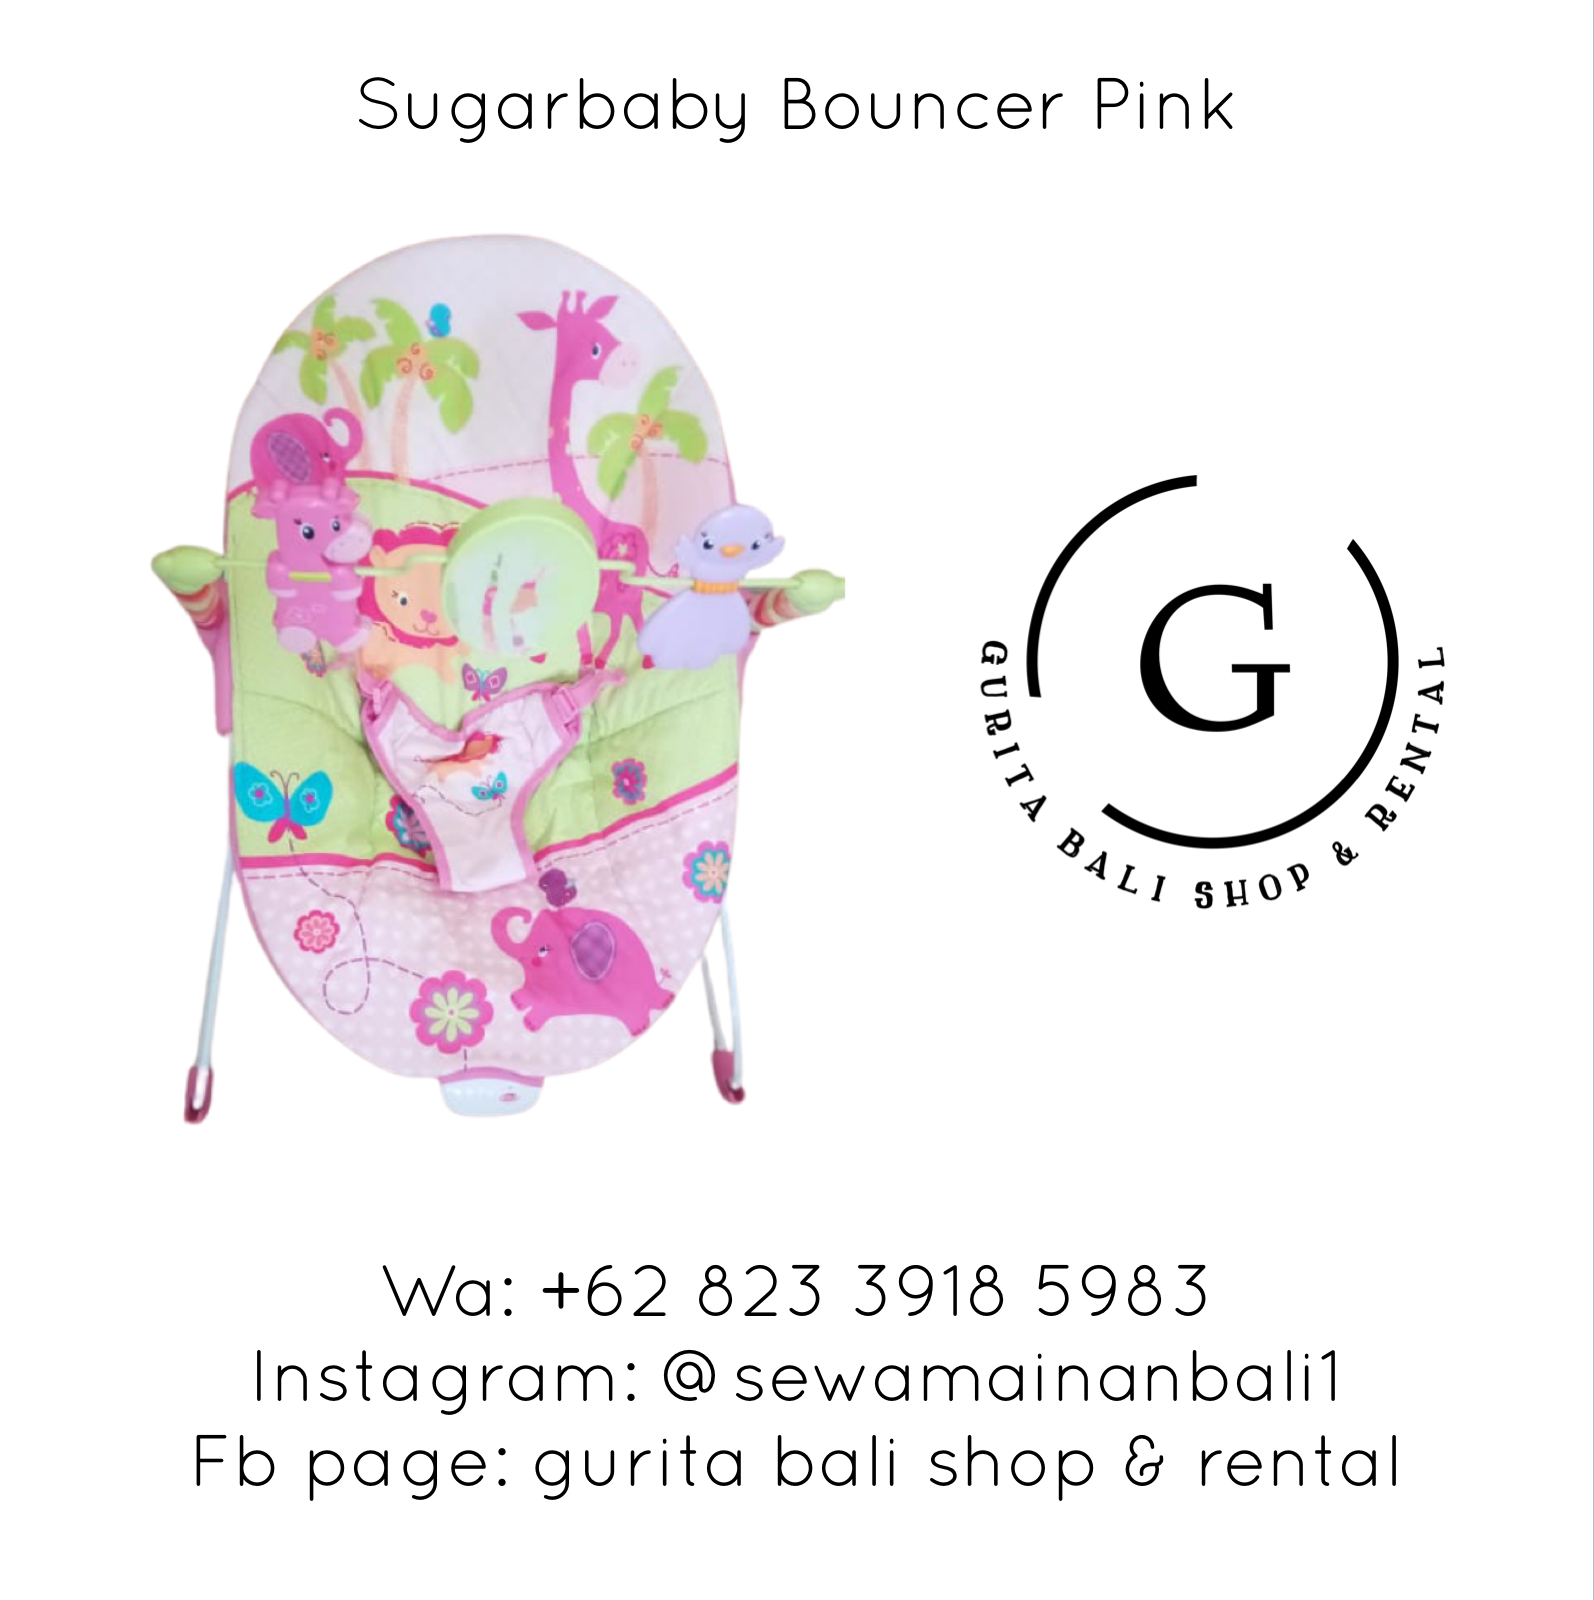 SUGARBABY BOUNCER